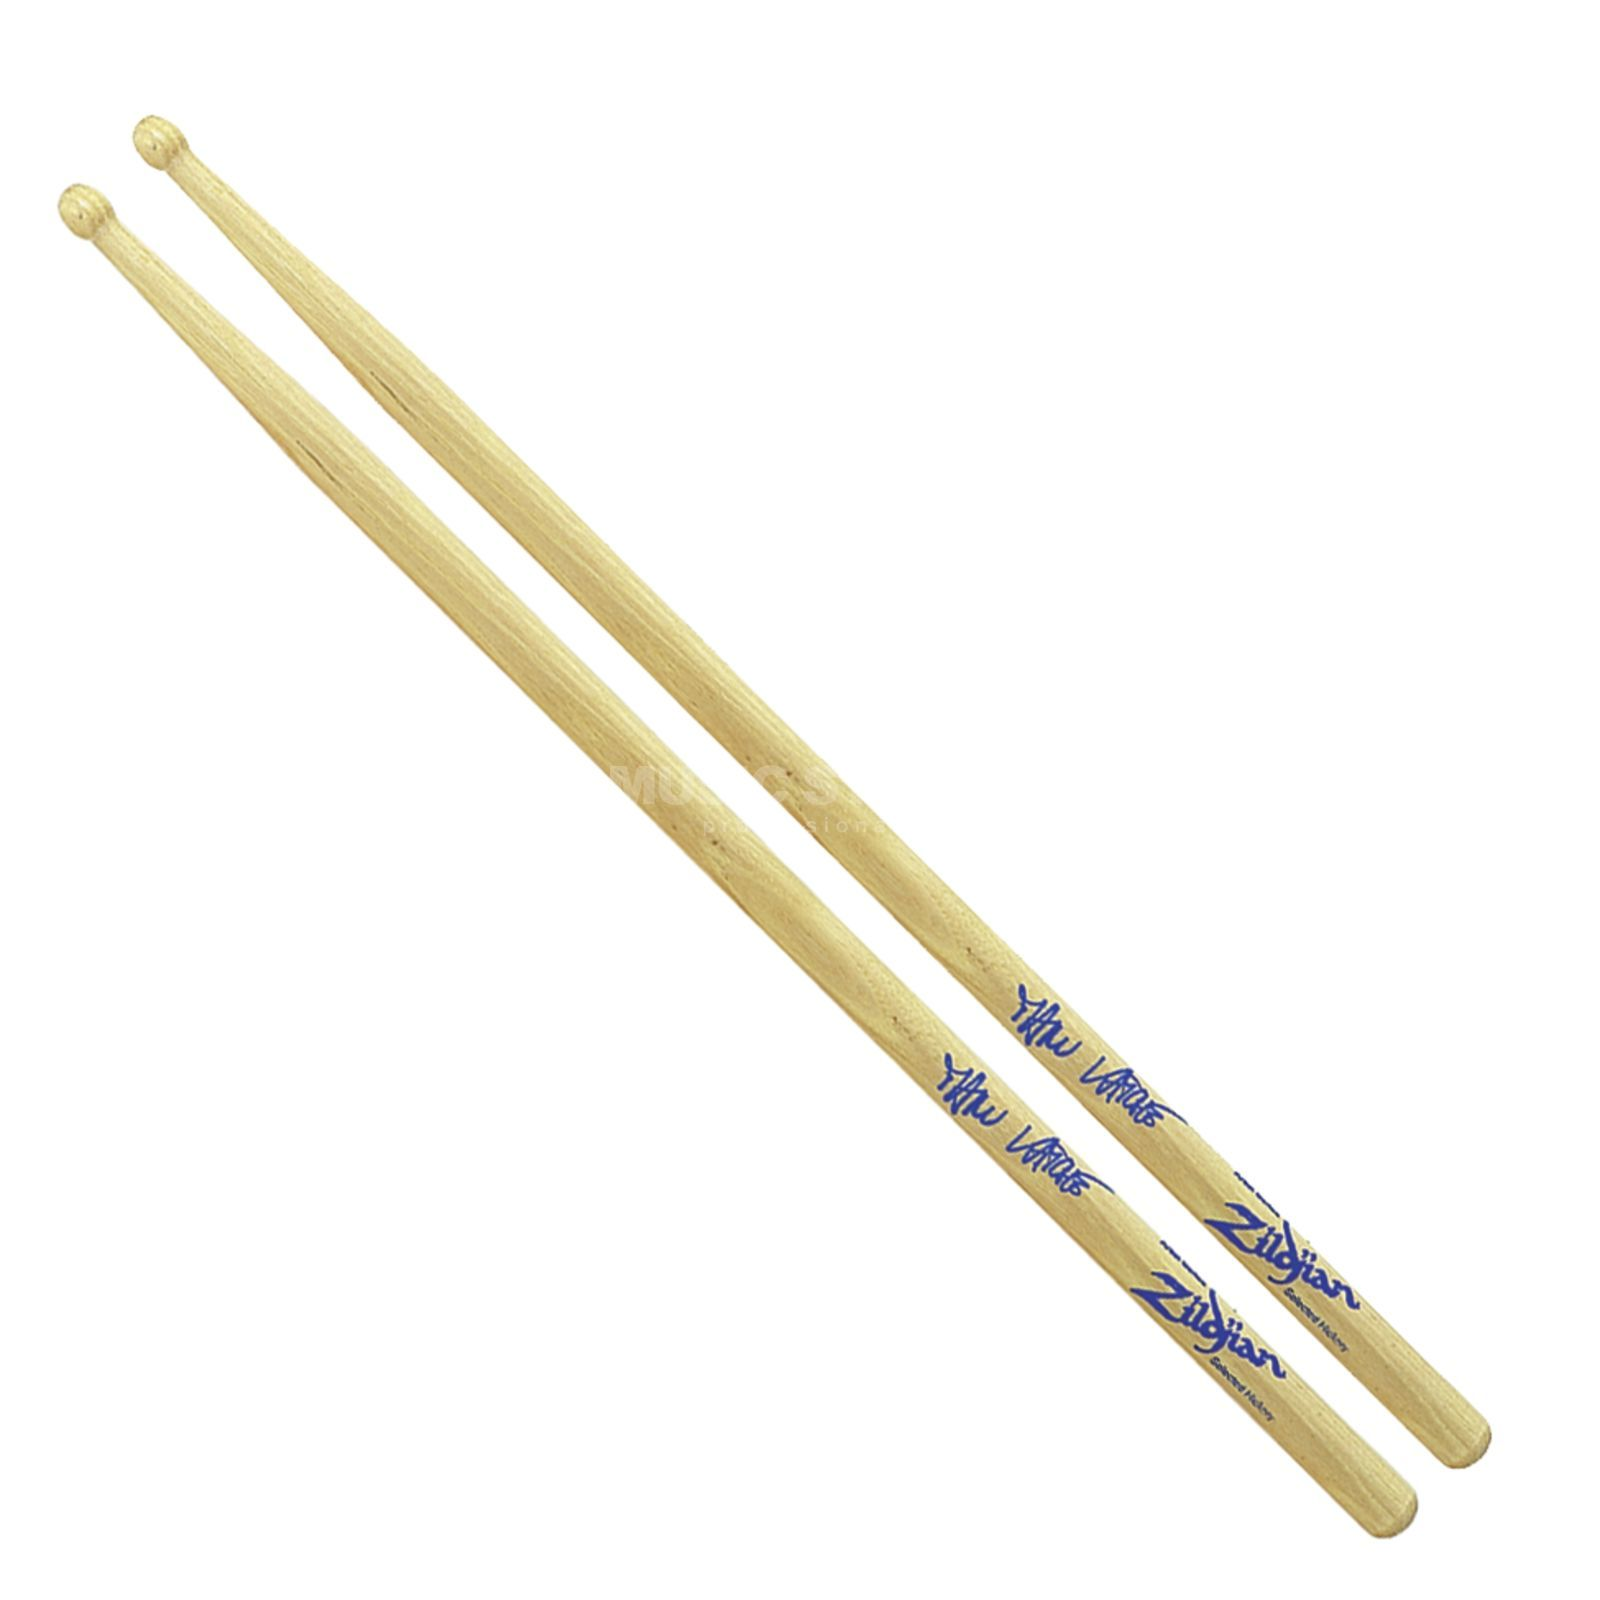 Zildjian Manu Katche Hickory Sticks Natural Finish, Wood Tip Produktbillede